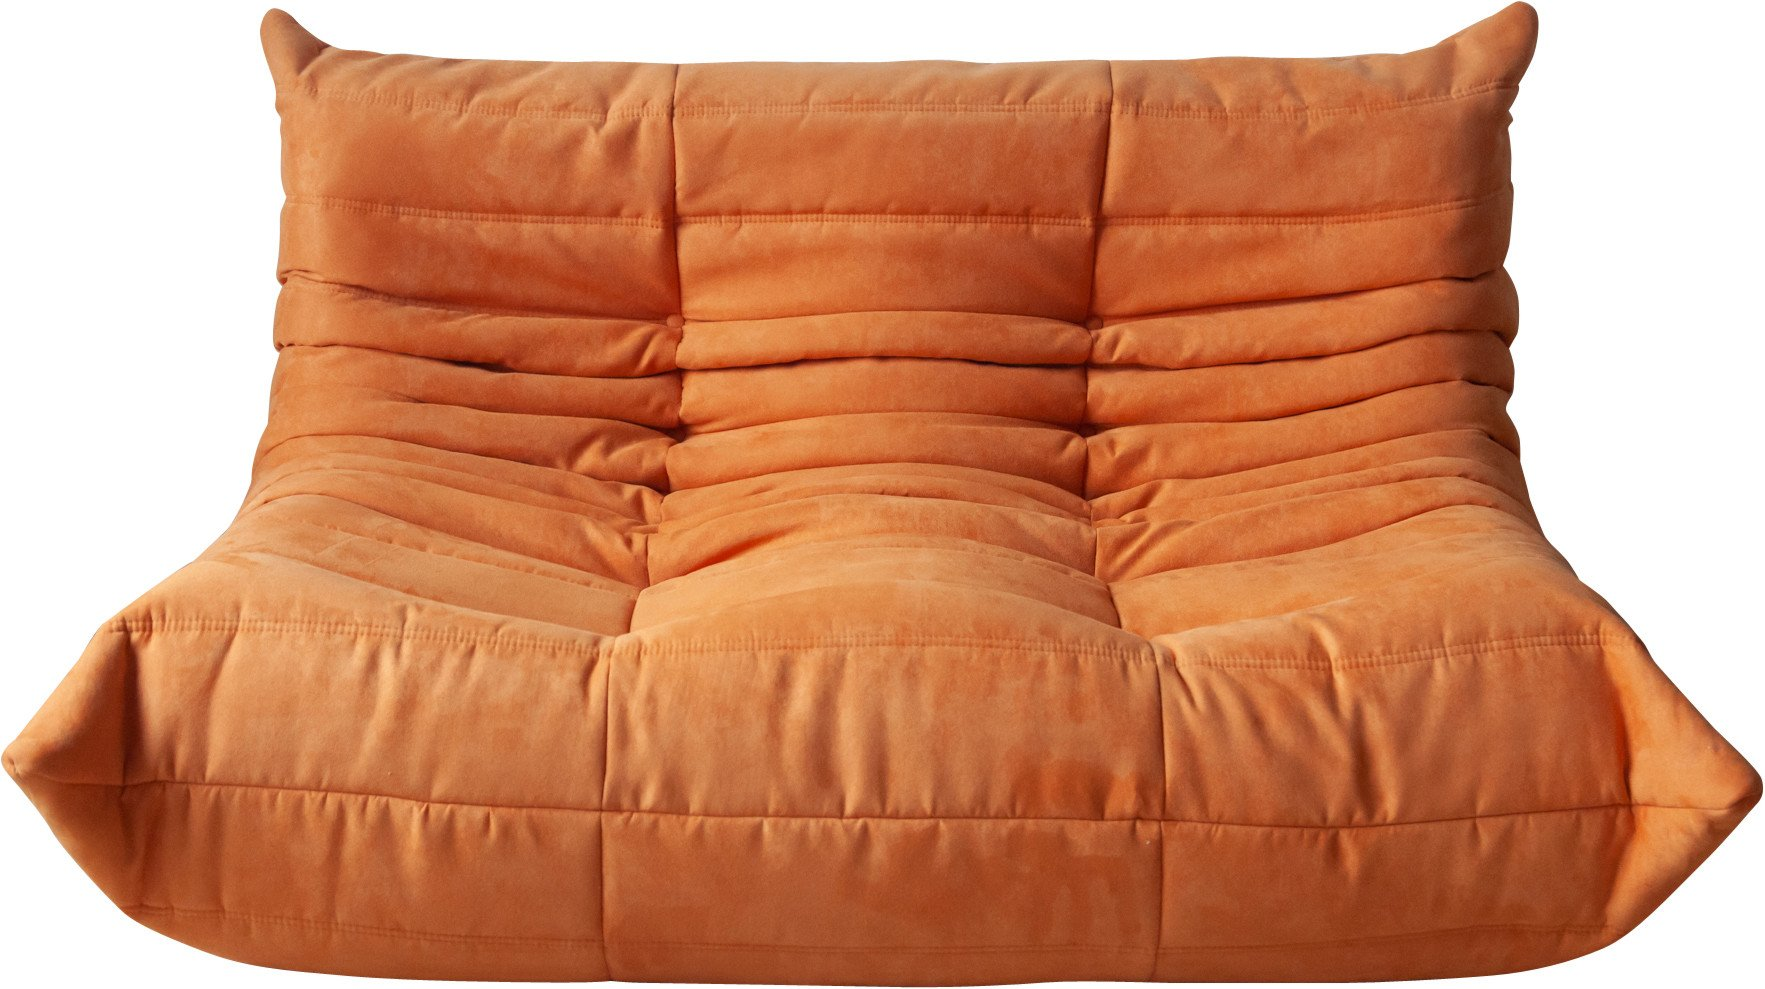 Togo Two-Seat Sofa in Orange Microfiber by M. Ducaroy, Ligne Roset, France, 1970s